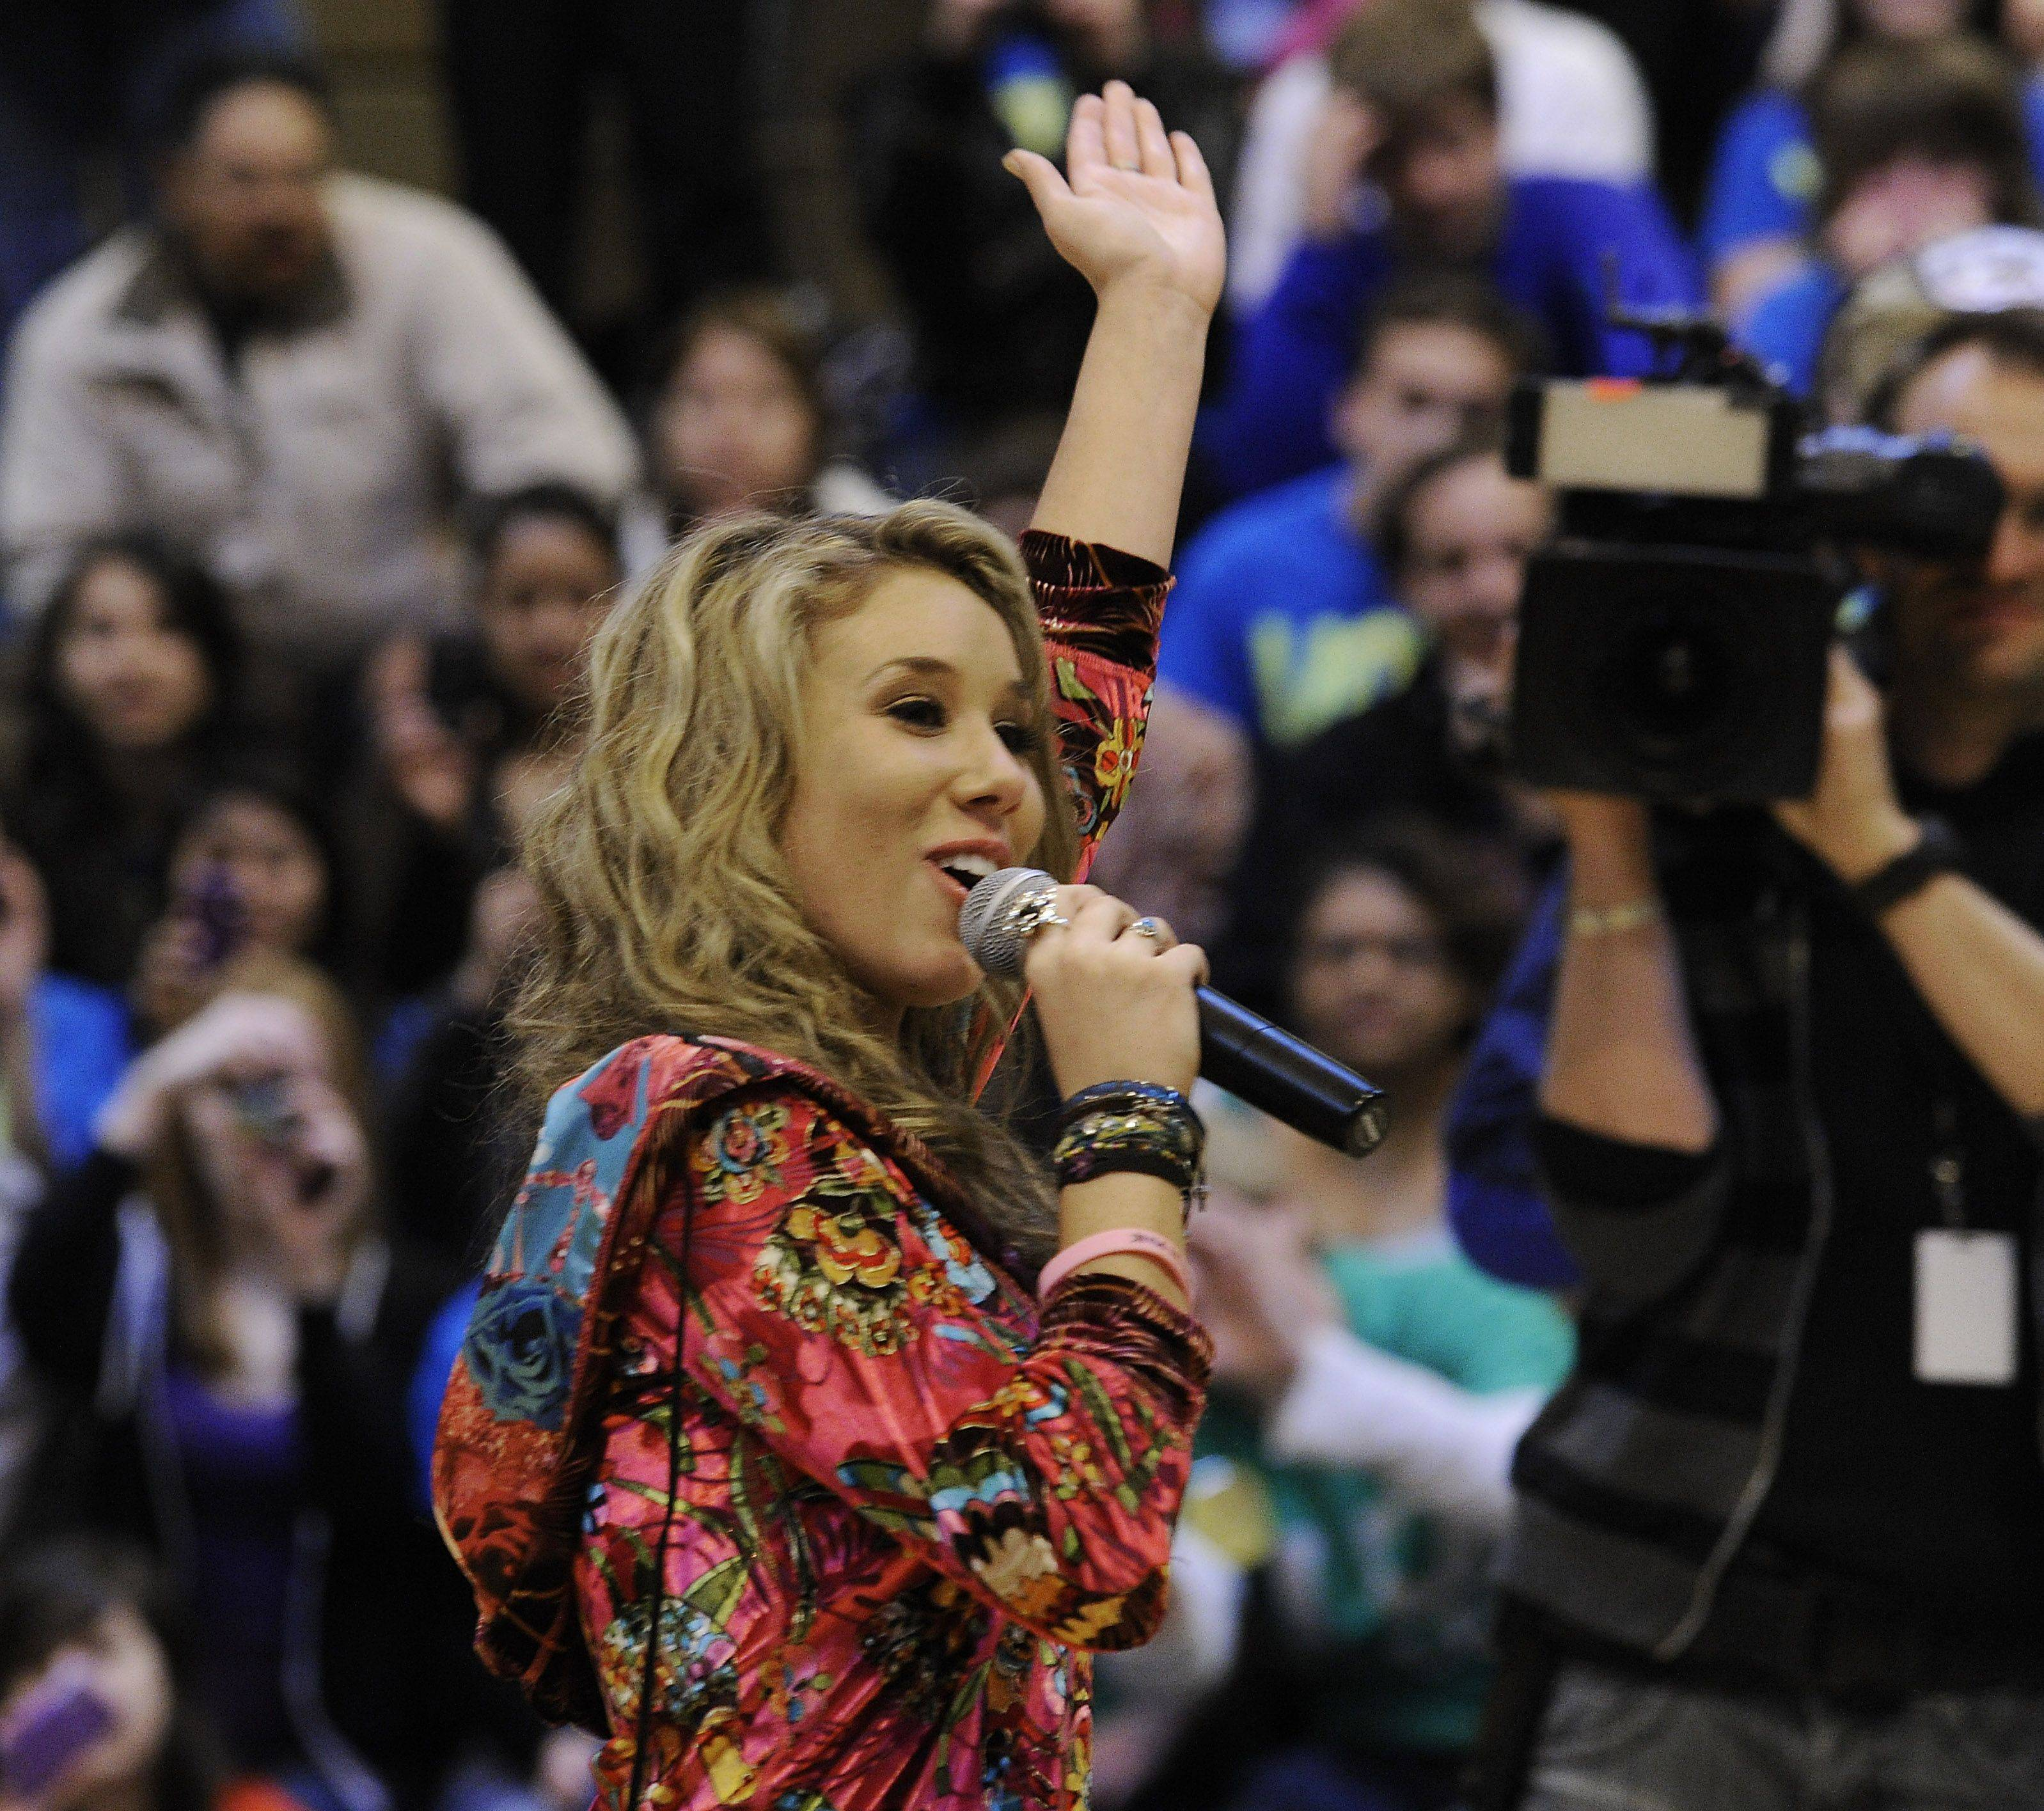 Haley Reinhart greets her fans at the Wheeling High School on Saturday as part of her American Idol hometown tour.